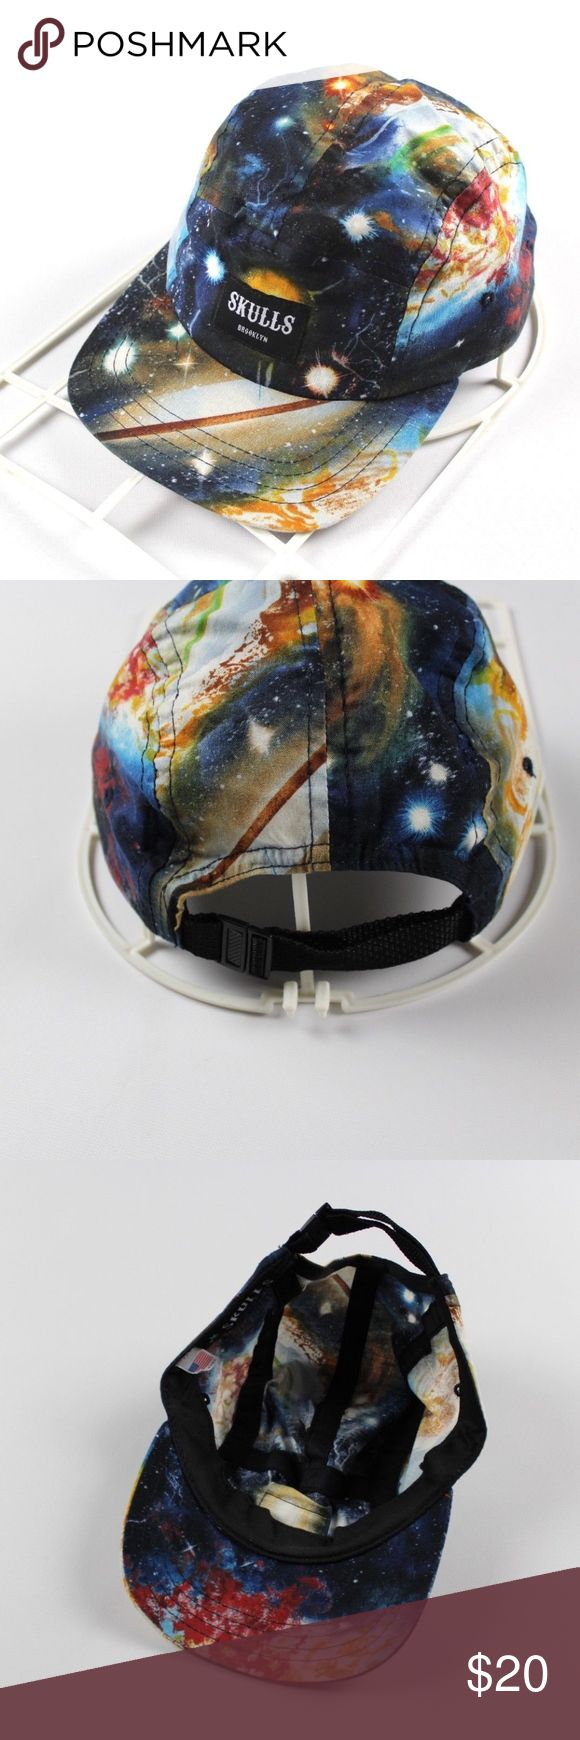 Skulls NYC Galaxy Space Print 5 Panel Hat Cap Skulls Brooklyn Space Print Galaxy 5 Panel Hat  Excellent hat  Comes from a smoke-free household  Space print  Strapback  Cotton  Check out my other items for sale! Skulls NYC Accessories Hats